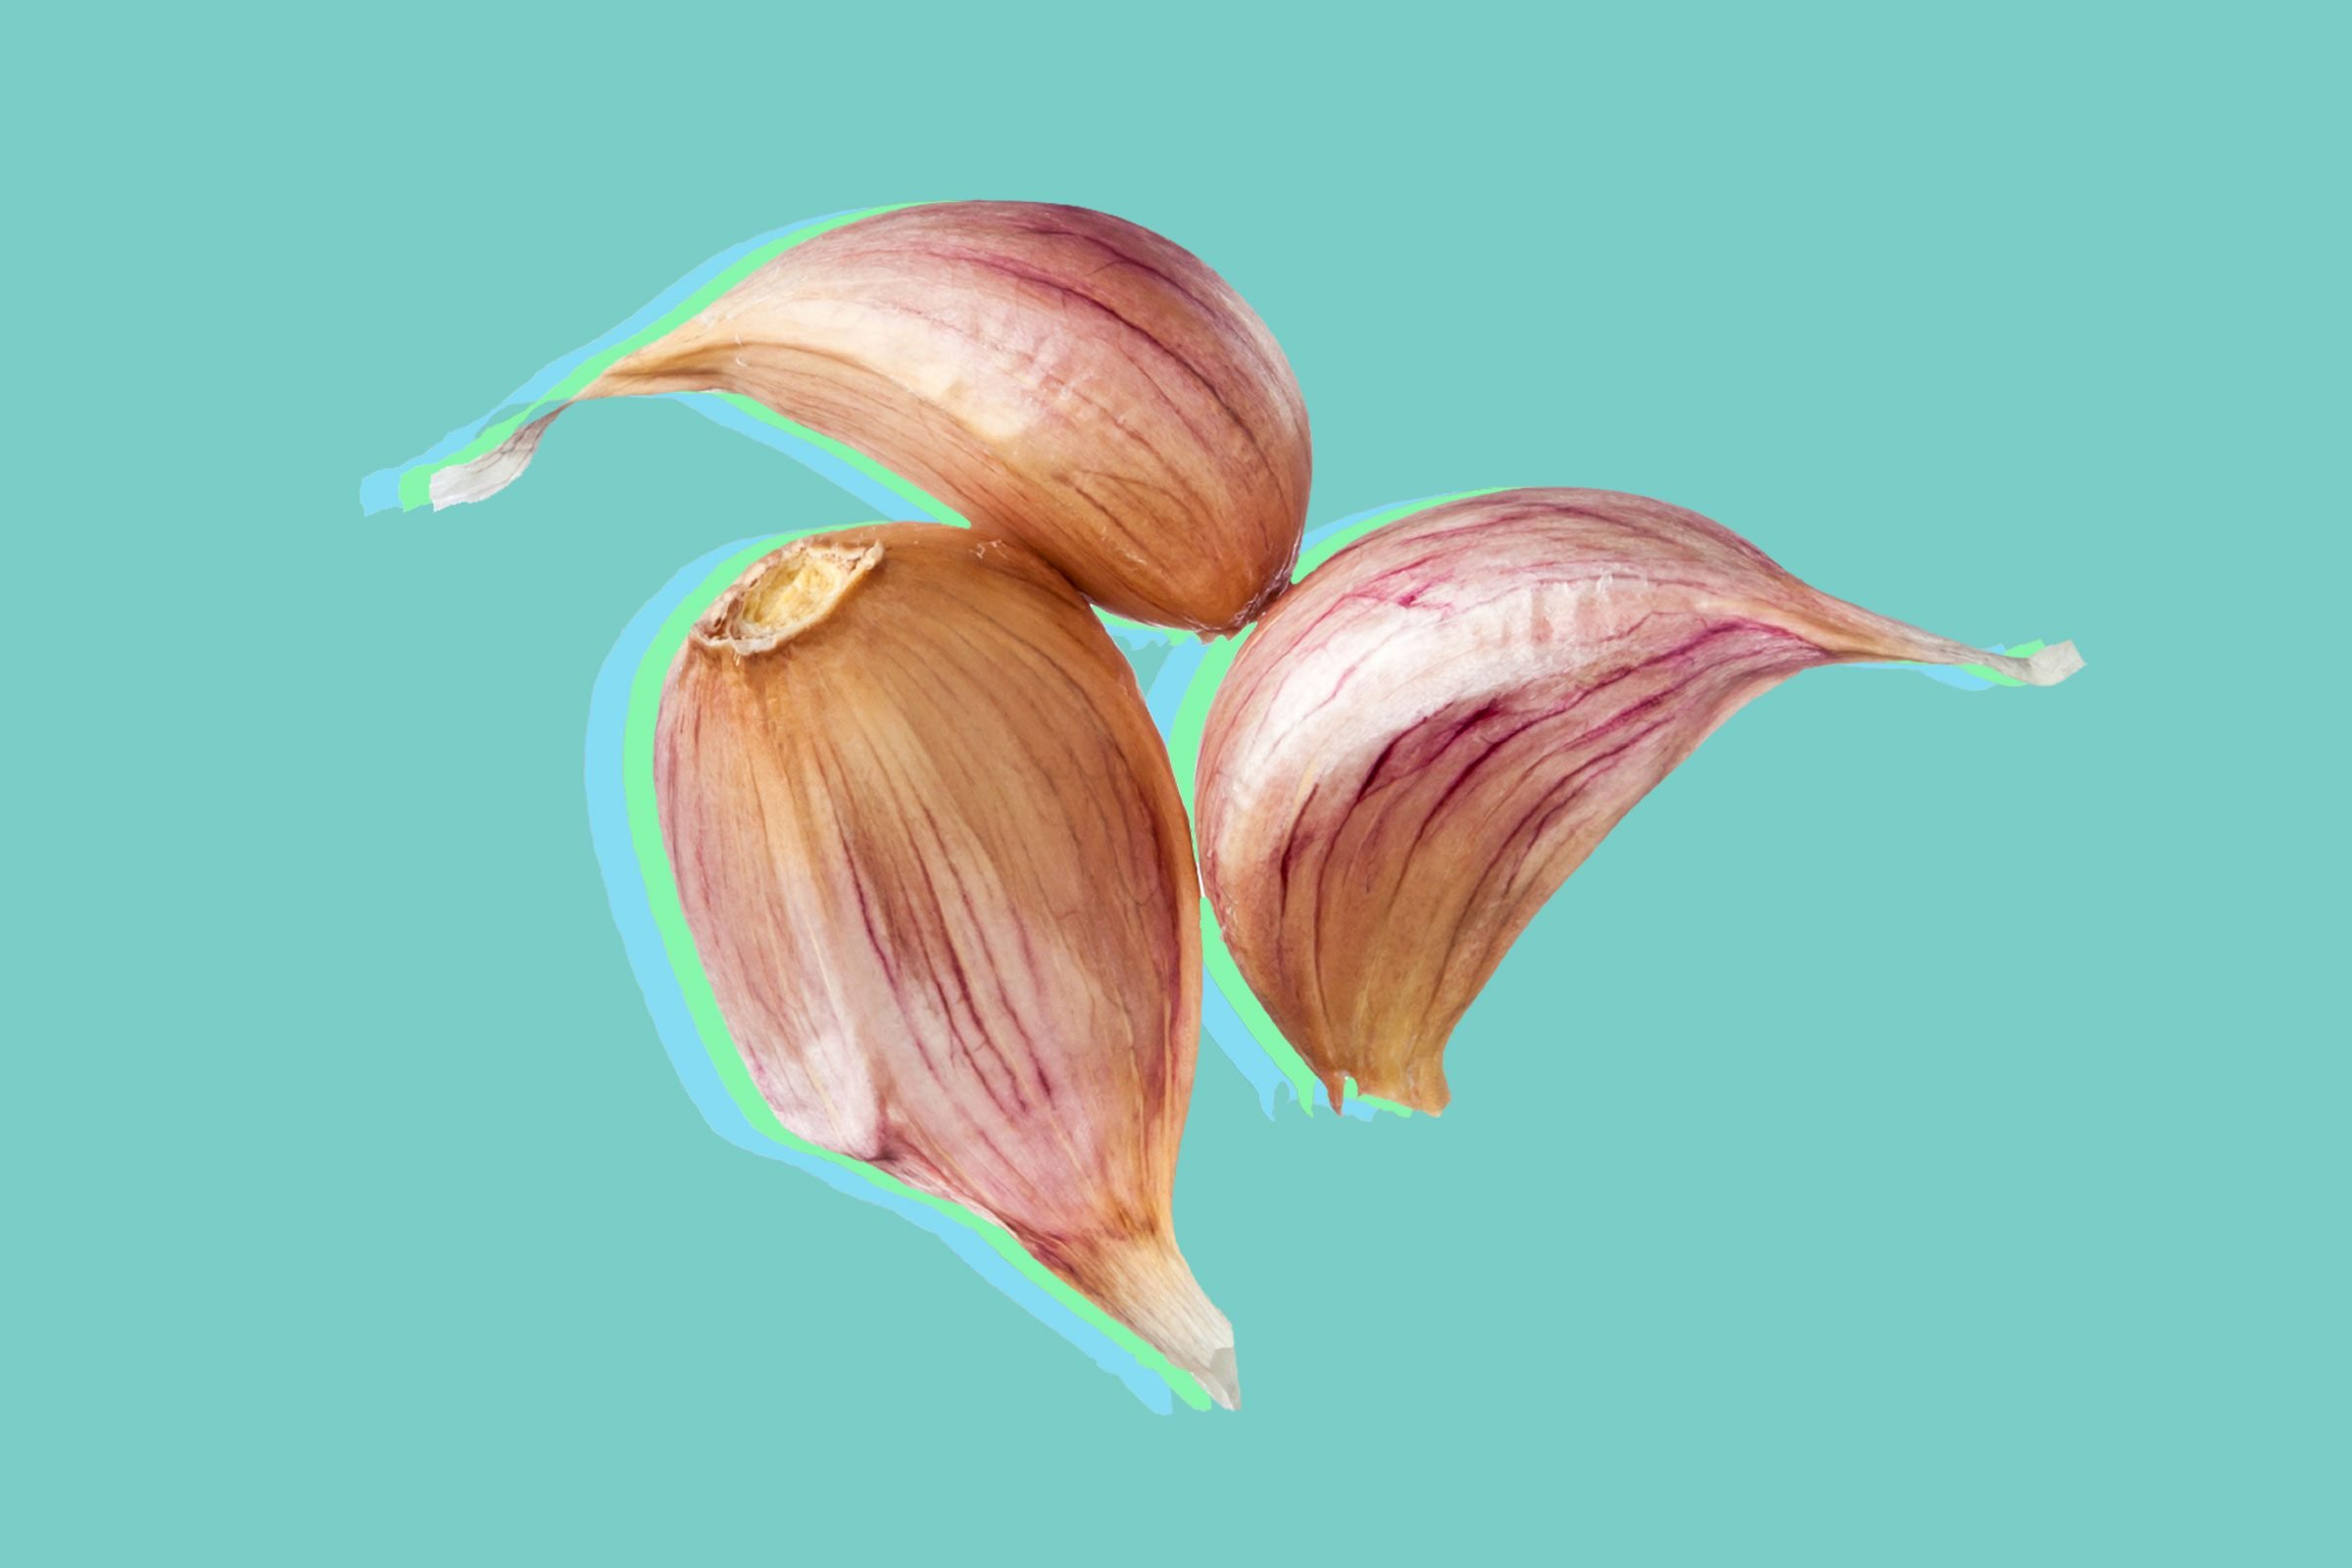 Use garlic to stop swimmer's ear